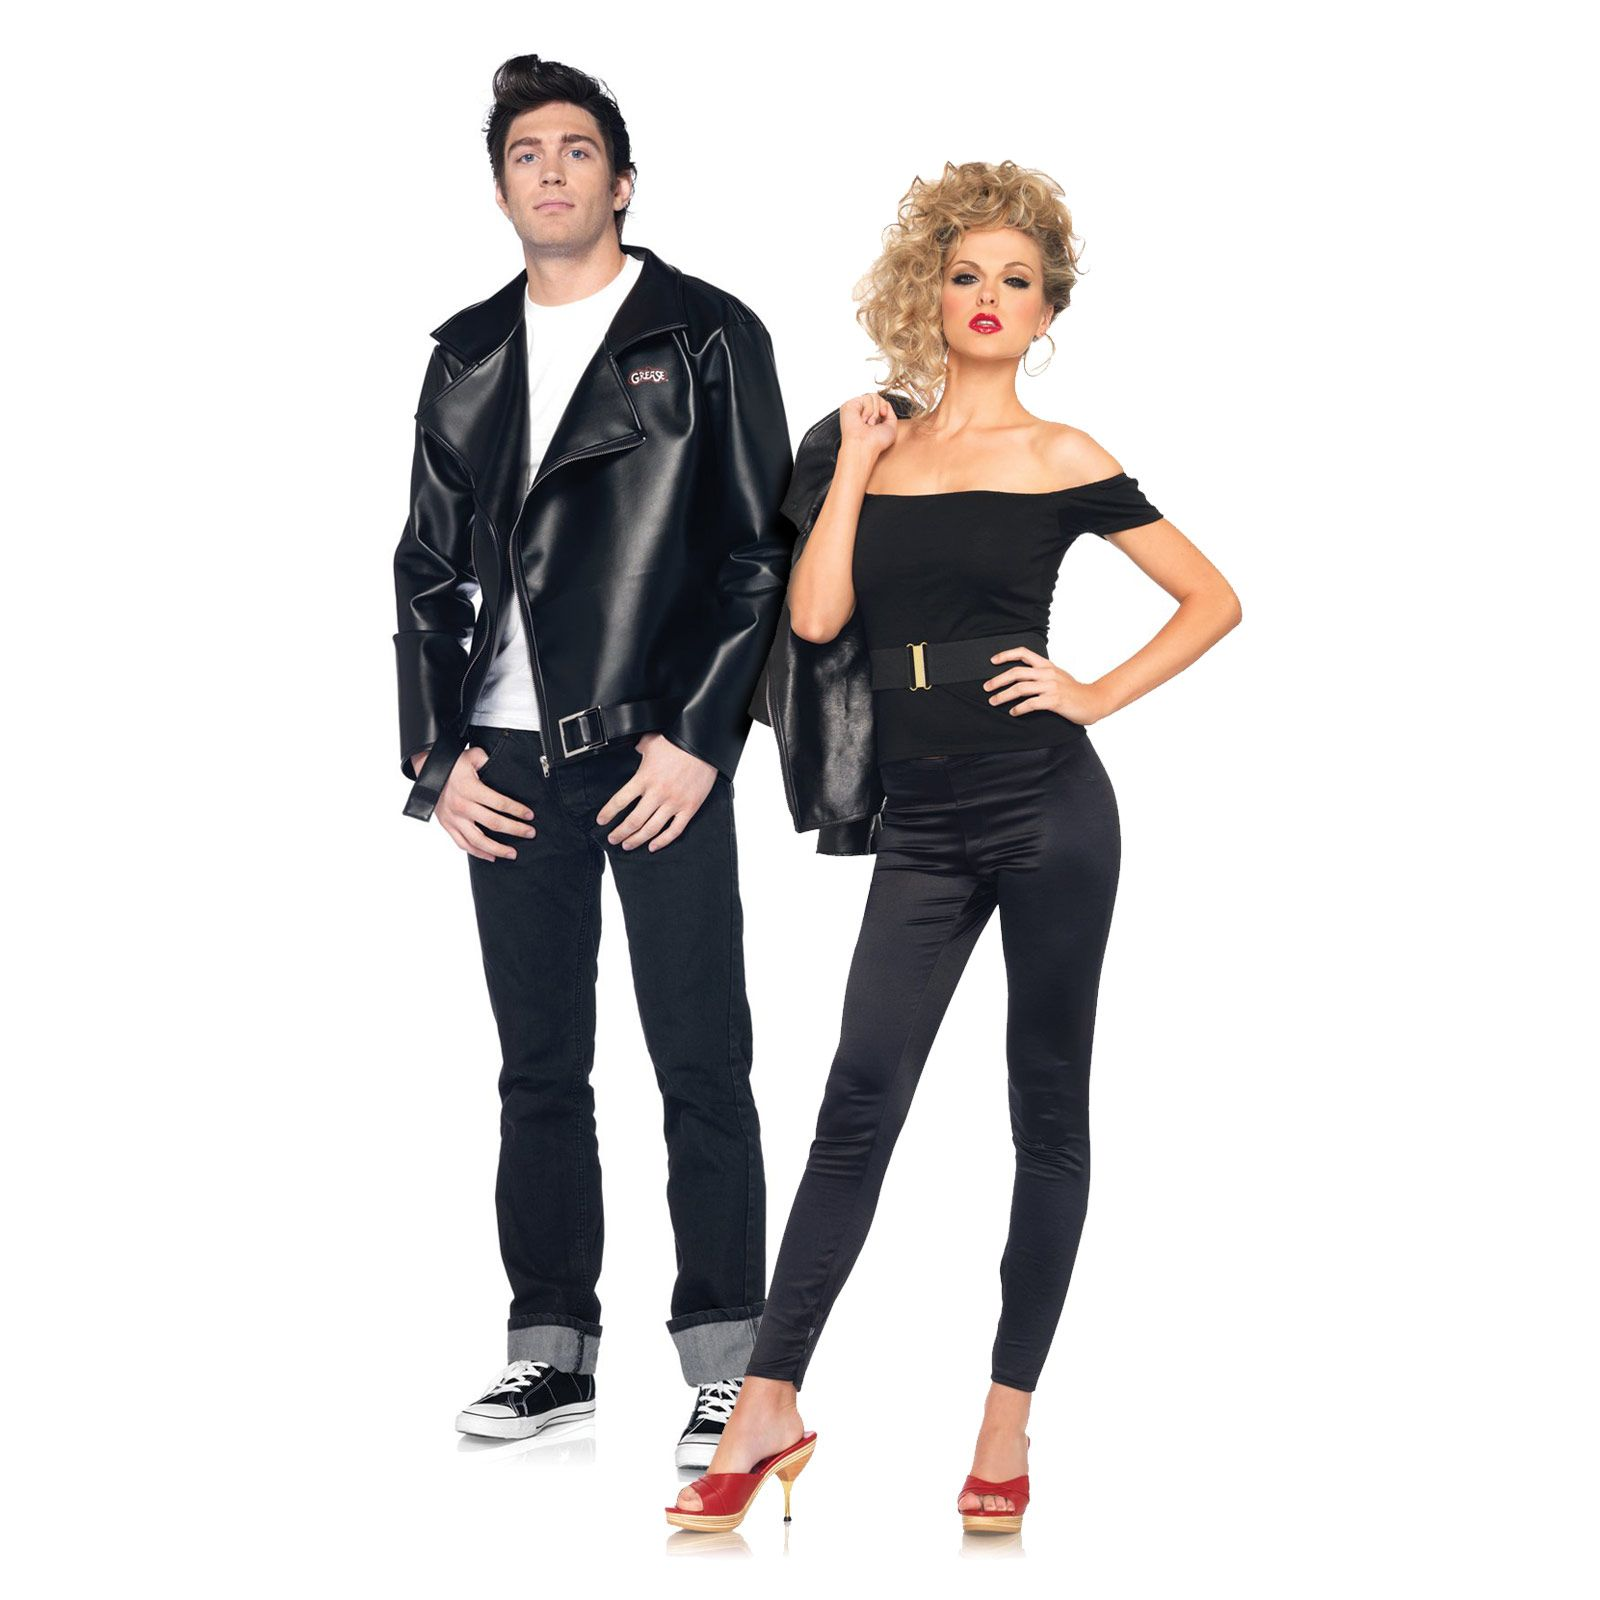 Grease Danny & Sandy couples costume | Costume | Pinterest | Kostüm